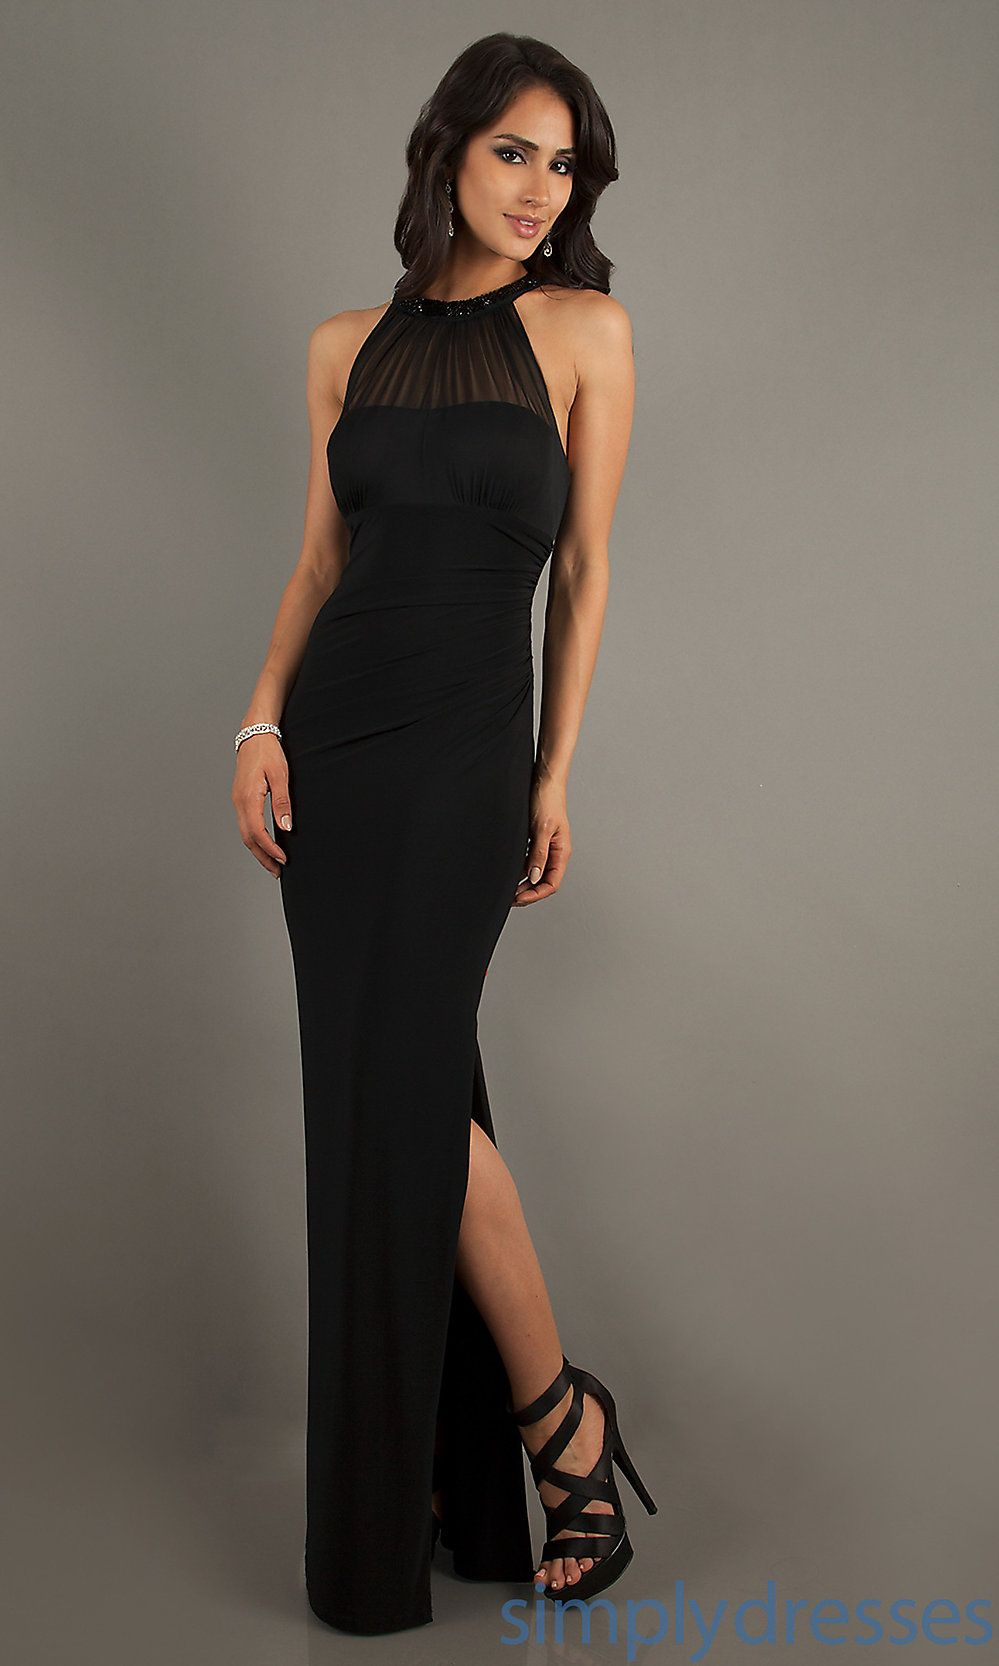 17 Best images about black dress on Pinterest | Halter dresses ...